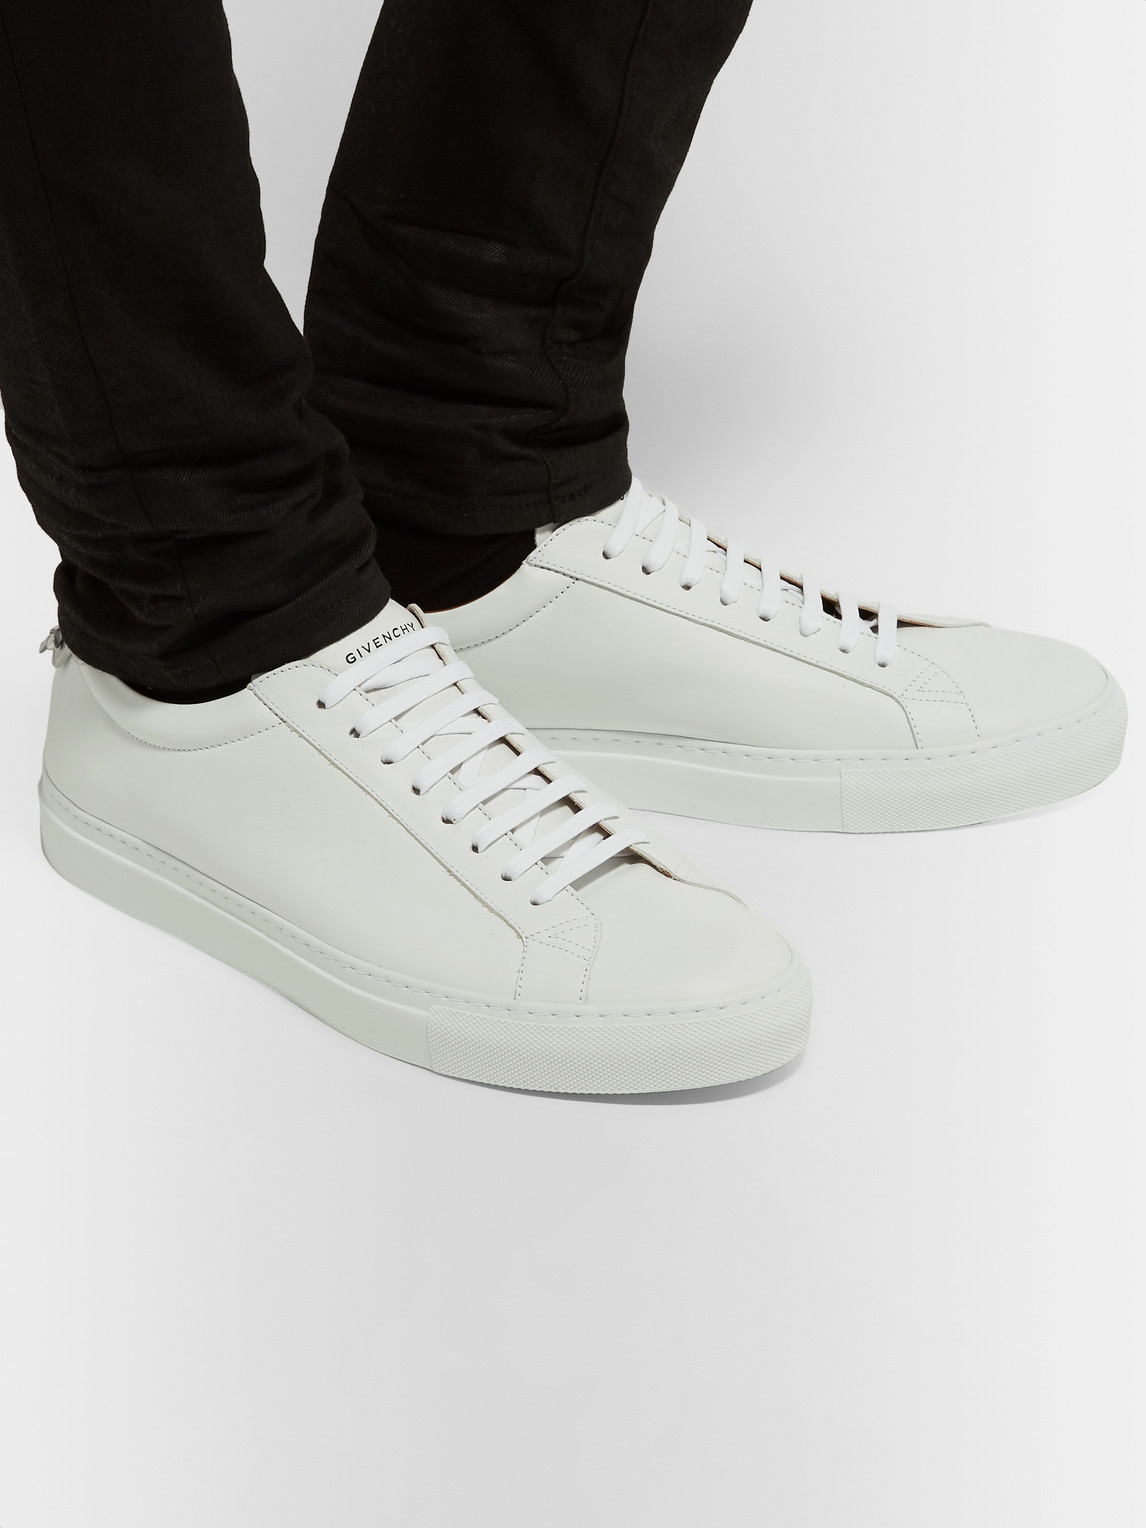 Givenchy Sneakers URBAN STREET LEATHER SNEAKERS